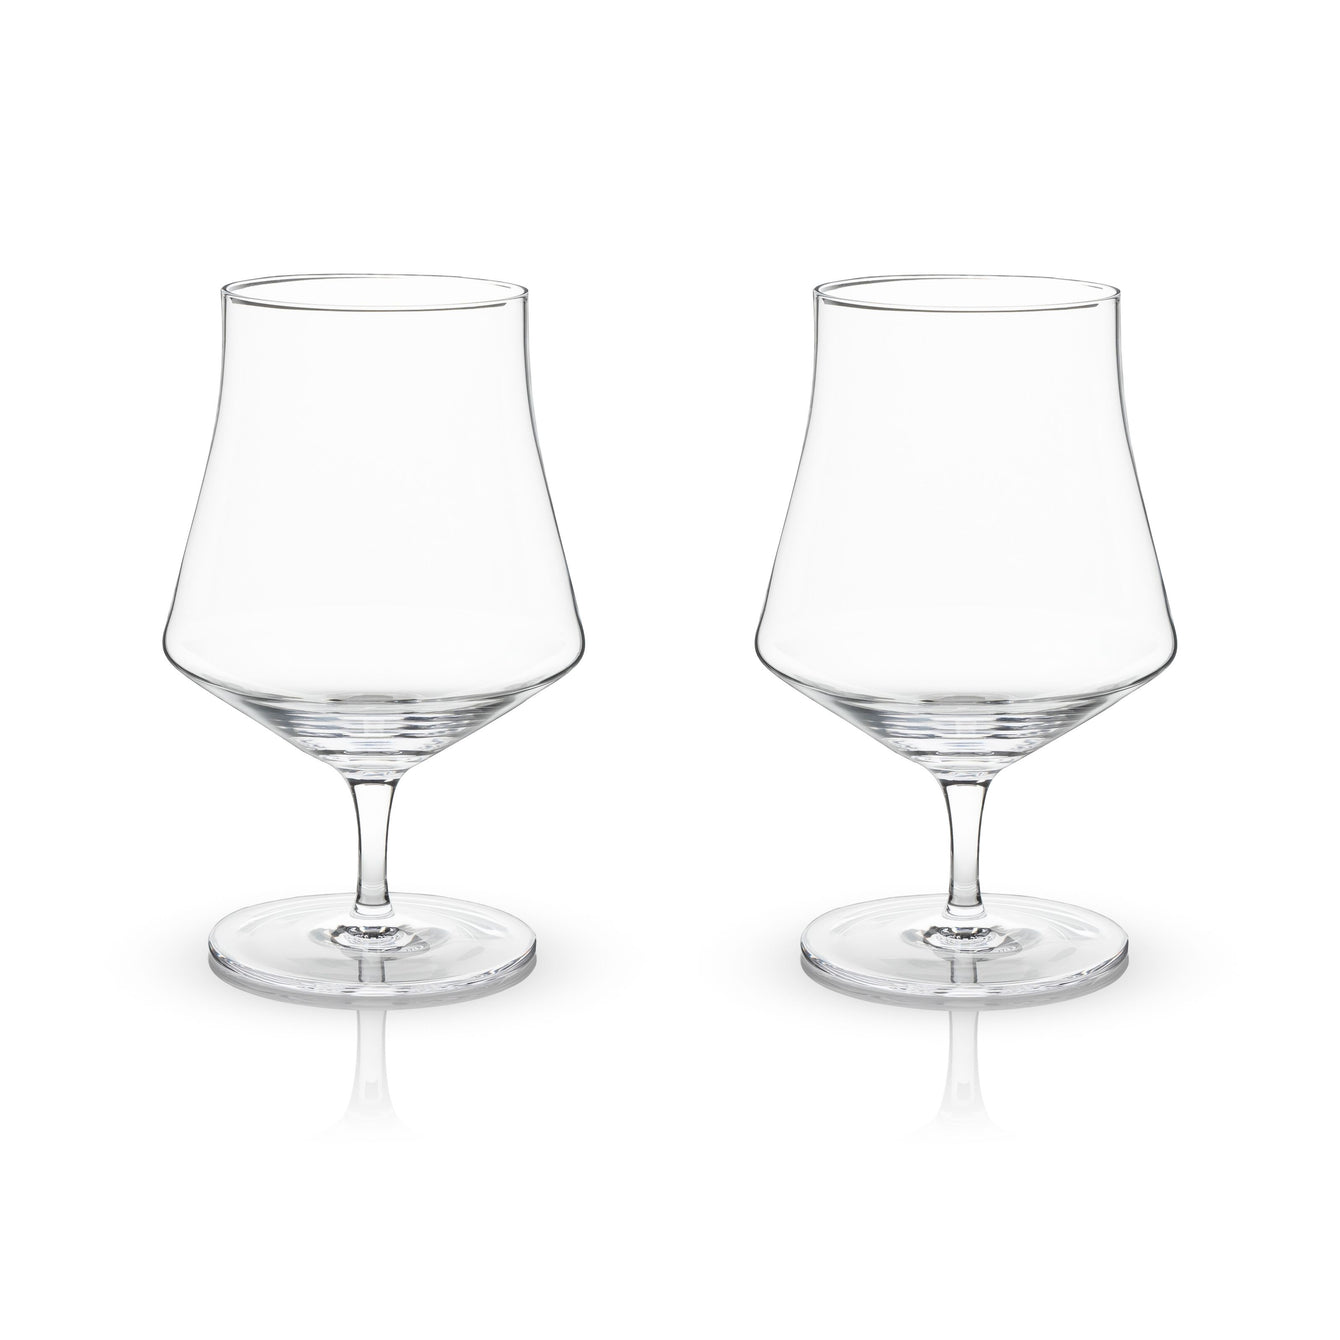 Raye Lead Free Crystal Stemware and Bar Glass Collection-Home - Entertaining - Beer Glasses Sets-VISKI-Set of 2 Beer Goblet Glasses-Peccadilly